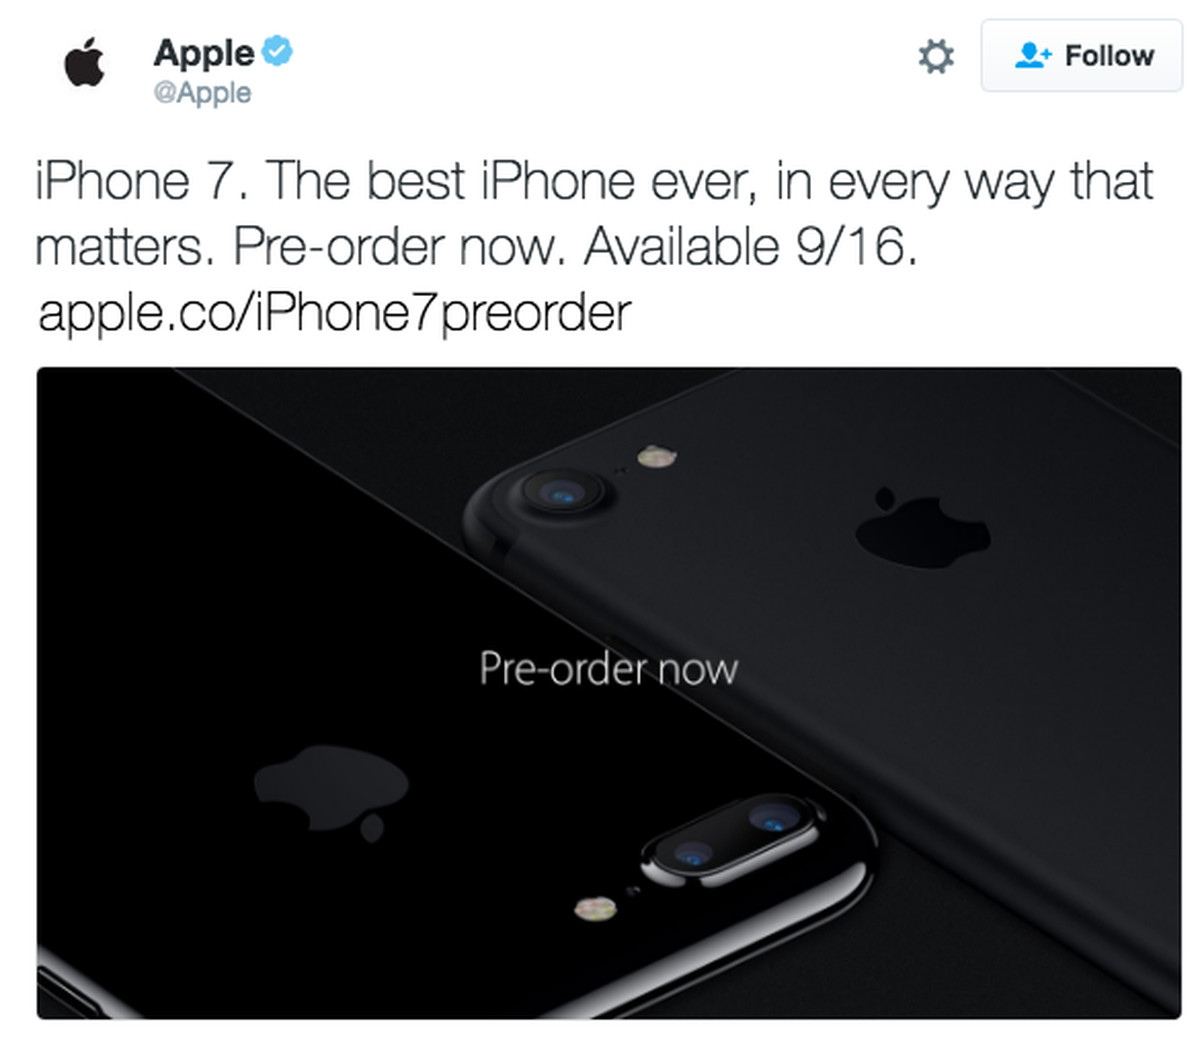 apple iphone announcement apple s account spoils iphone announcement the verge 10107